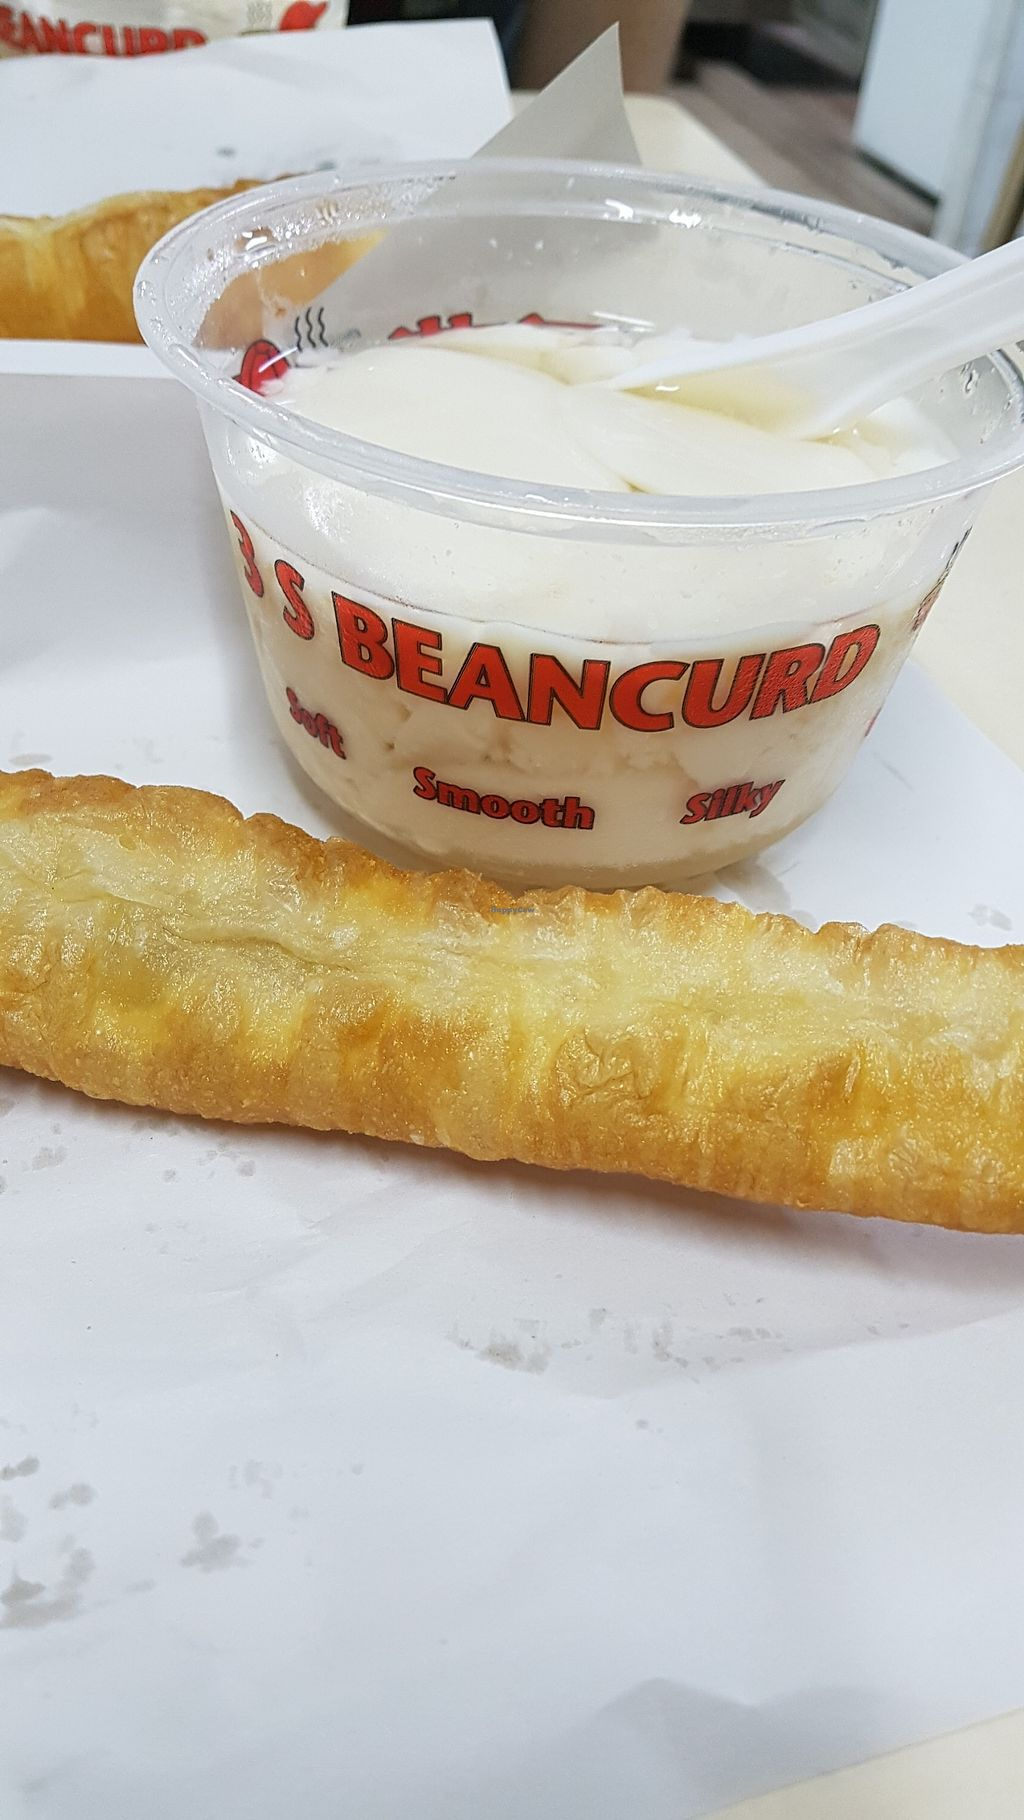 "Photo of 3S Beancurd City  by <a href=""/members/profile/SomethingVegan"">SomethingVegan</a> <br/>Awesome bean curd pudding and pastry <br/> January 1, 2018  - <a href='/contact/abuse/image/73530/341775'>Report</a>"